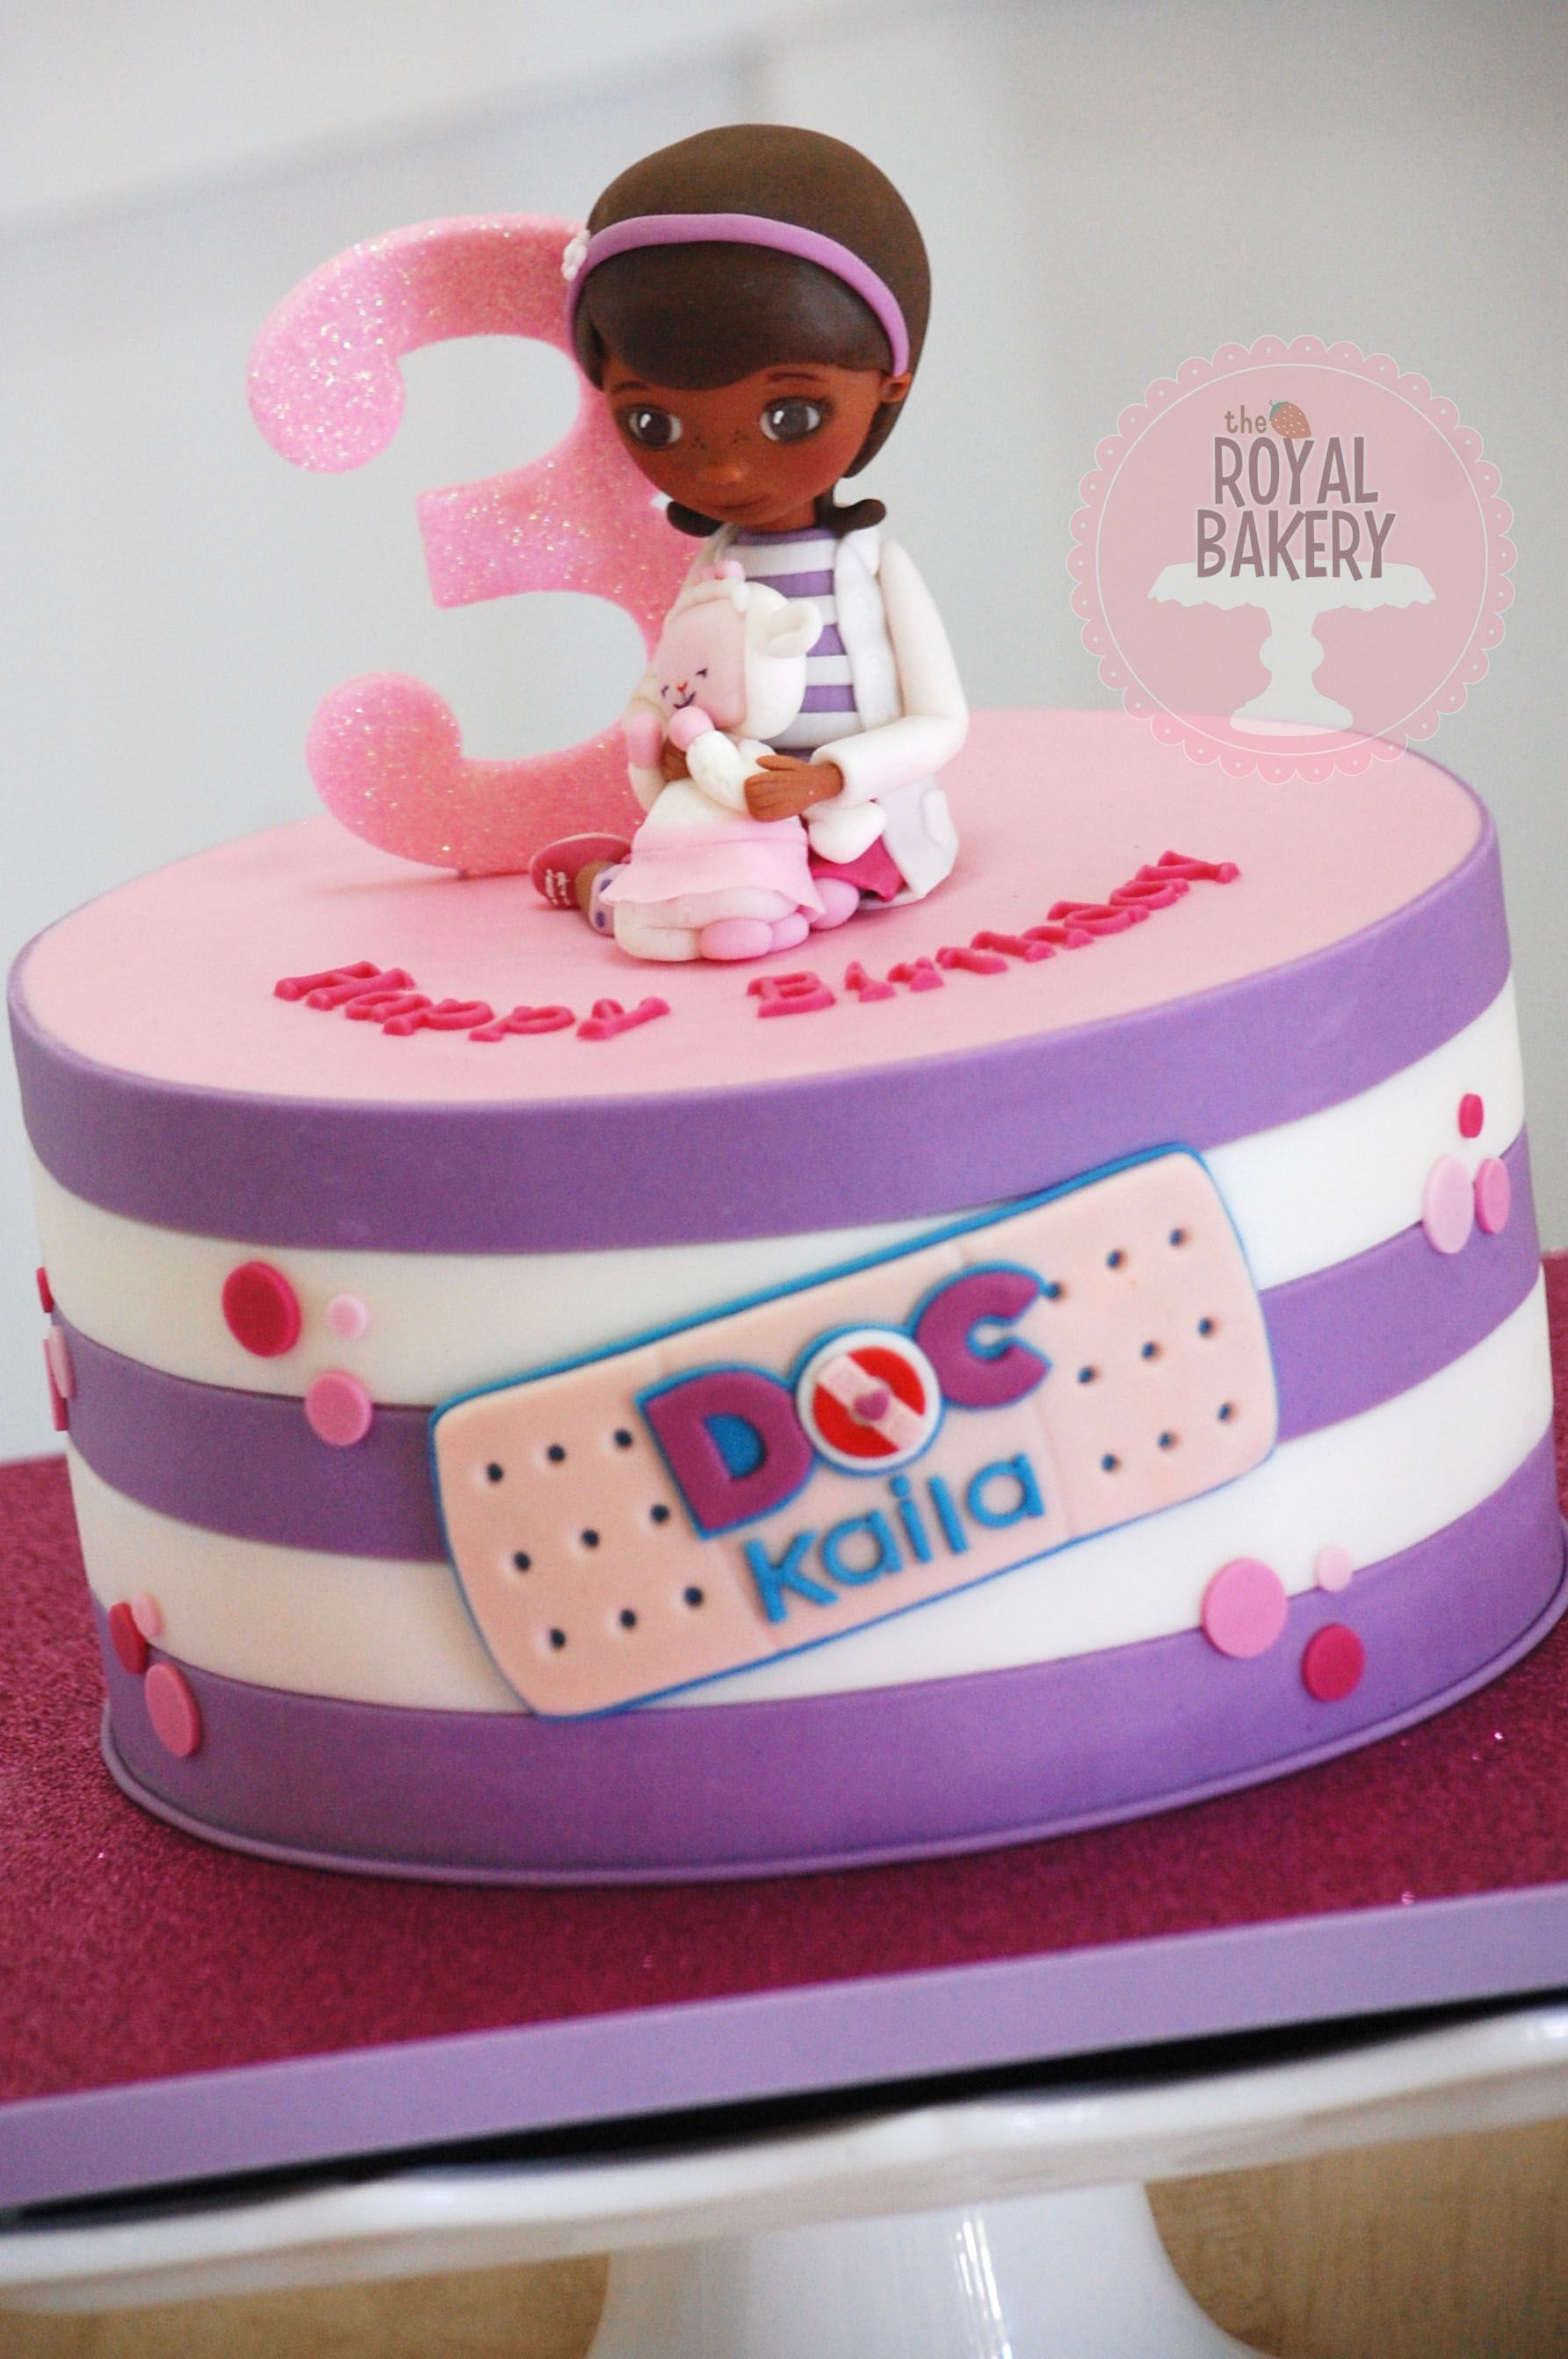 Doc Mcstuffins Birthday Cake Doc Mcstuffins Cake With Fondant Doc And Lambie Figures The Royal